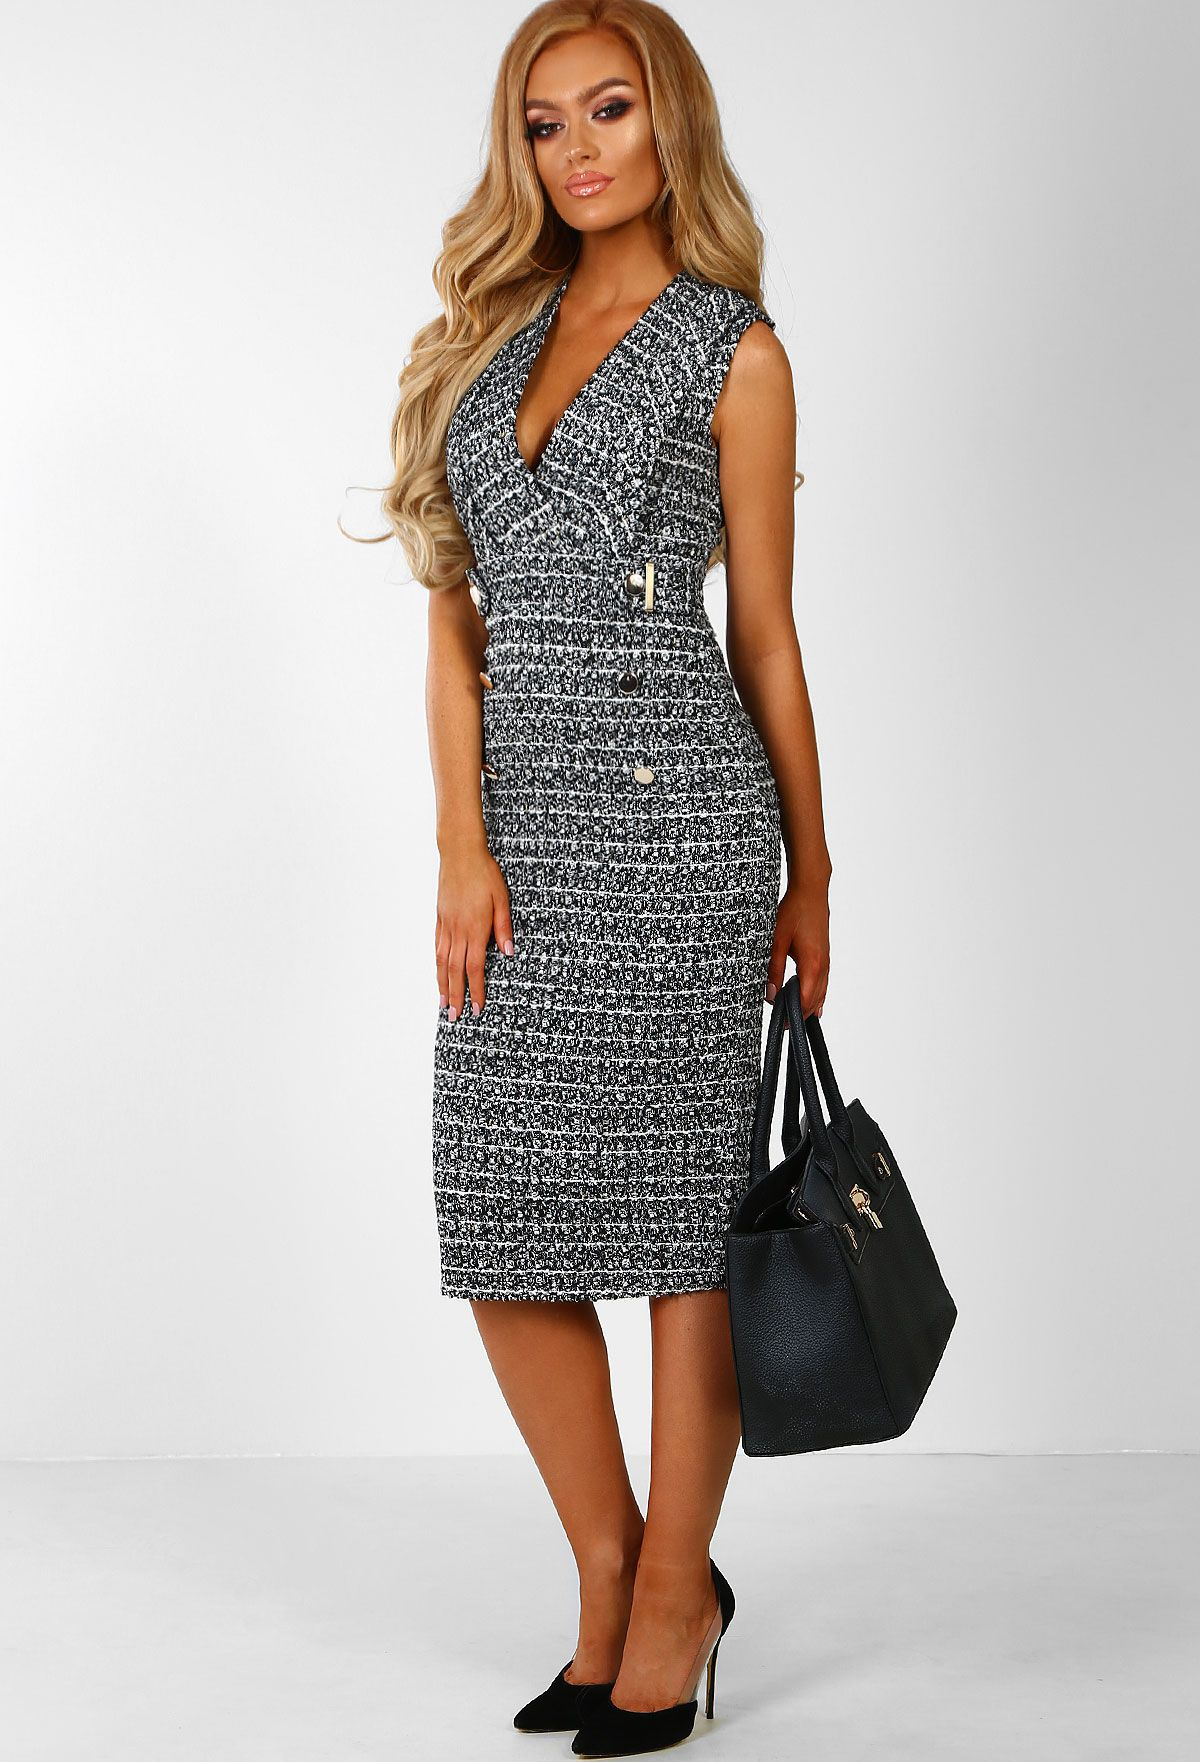 3406468edf105 Shop women's dresses at Pink Boutique - From bodycon dresses to skater  dresses, Pink Boutique